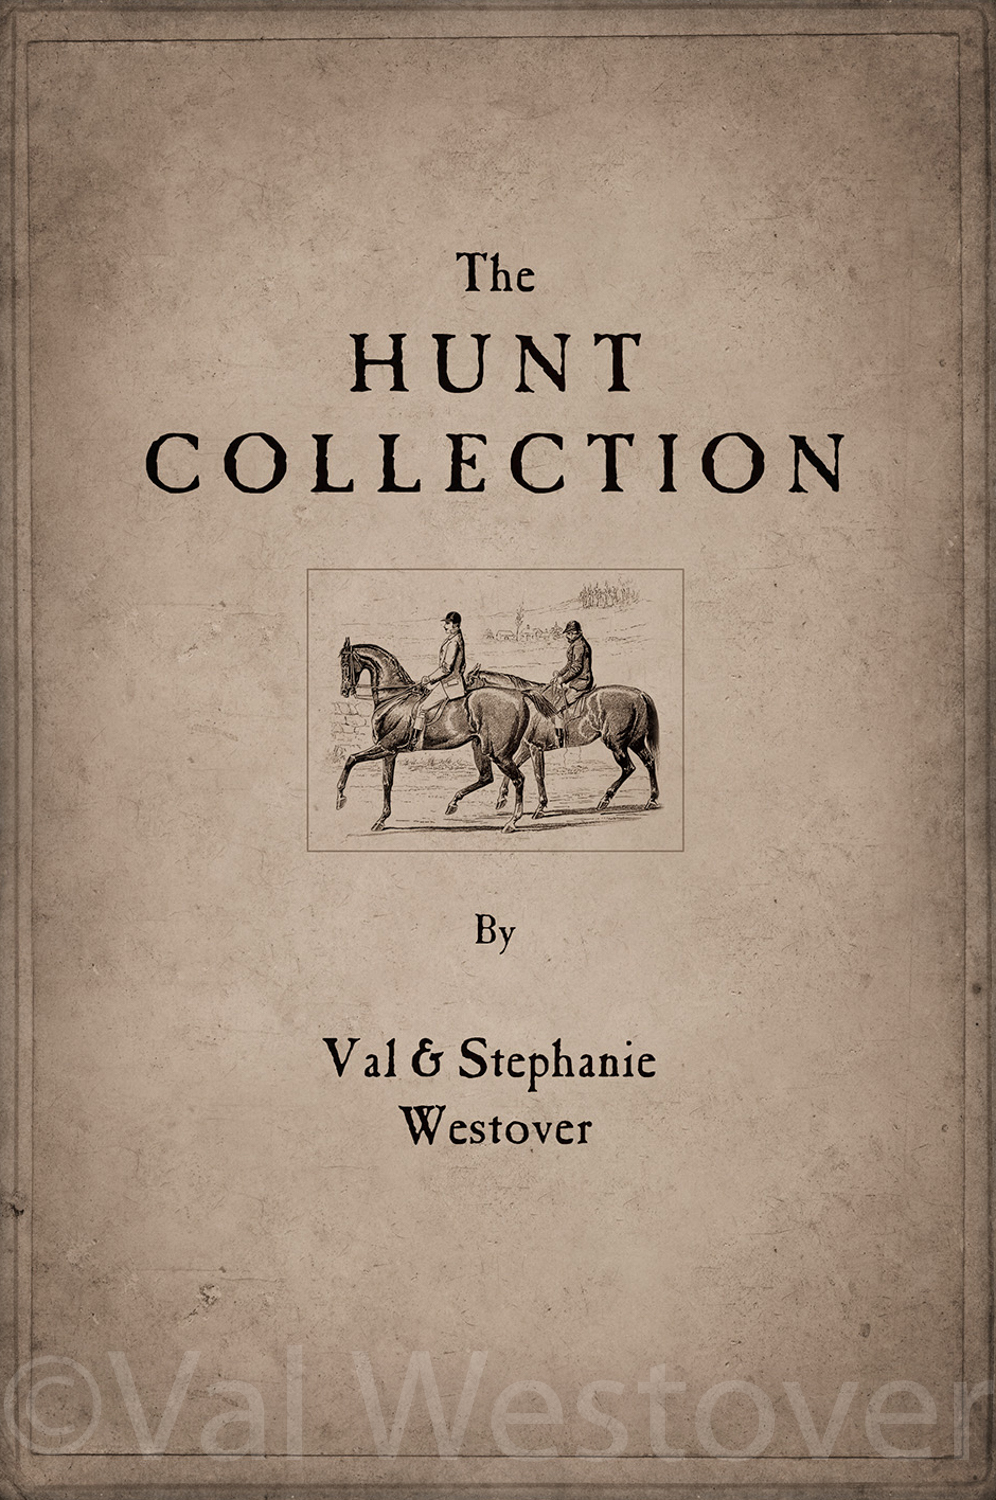 The Hunt Collction by Val and Stephanie Westover